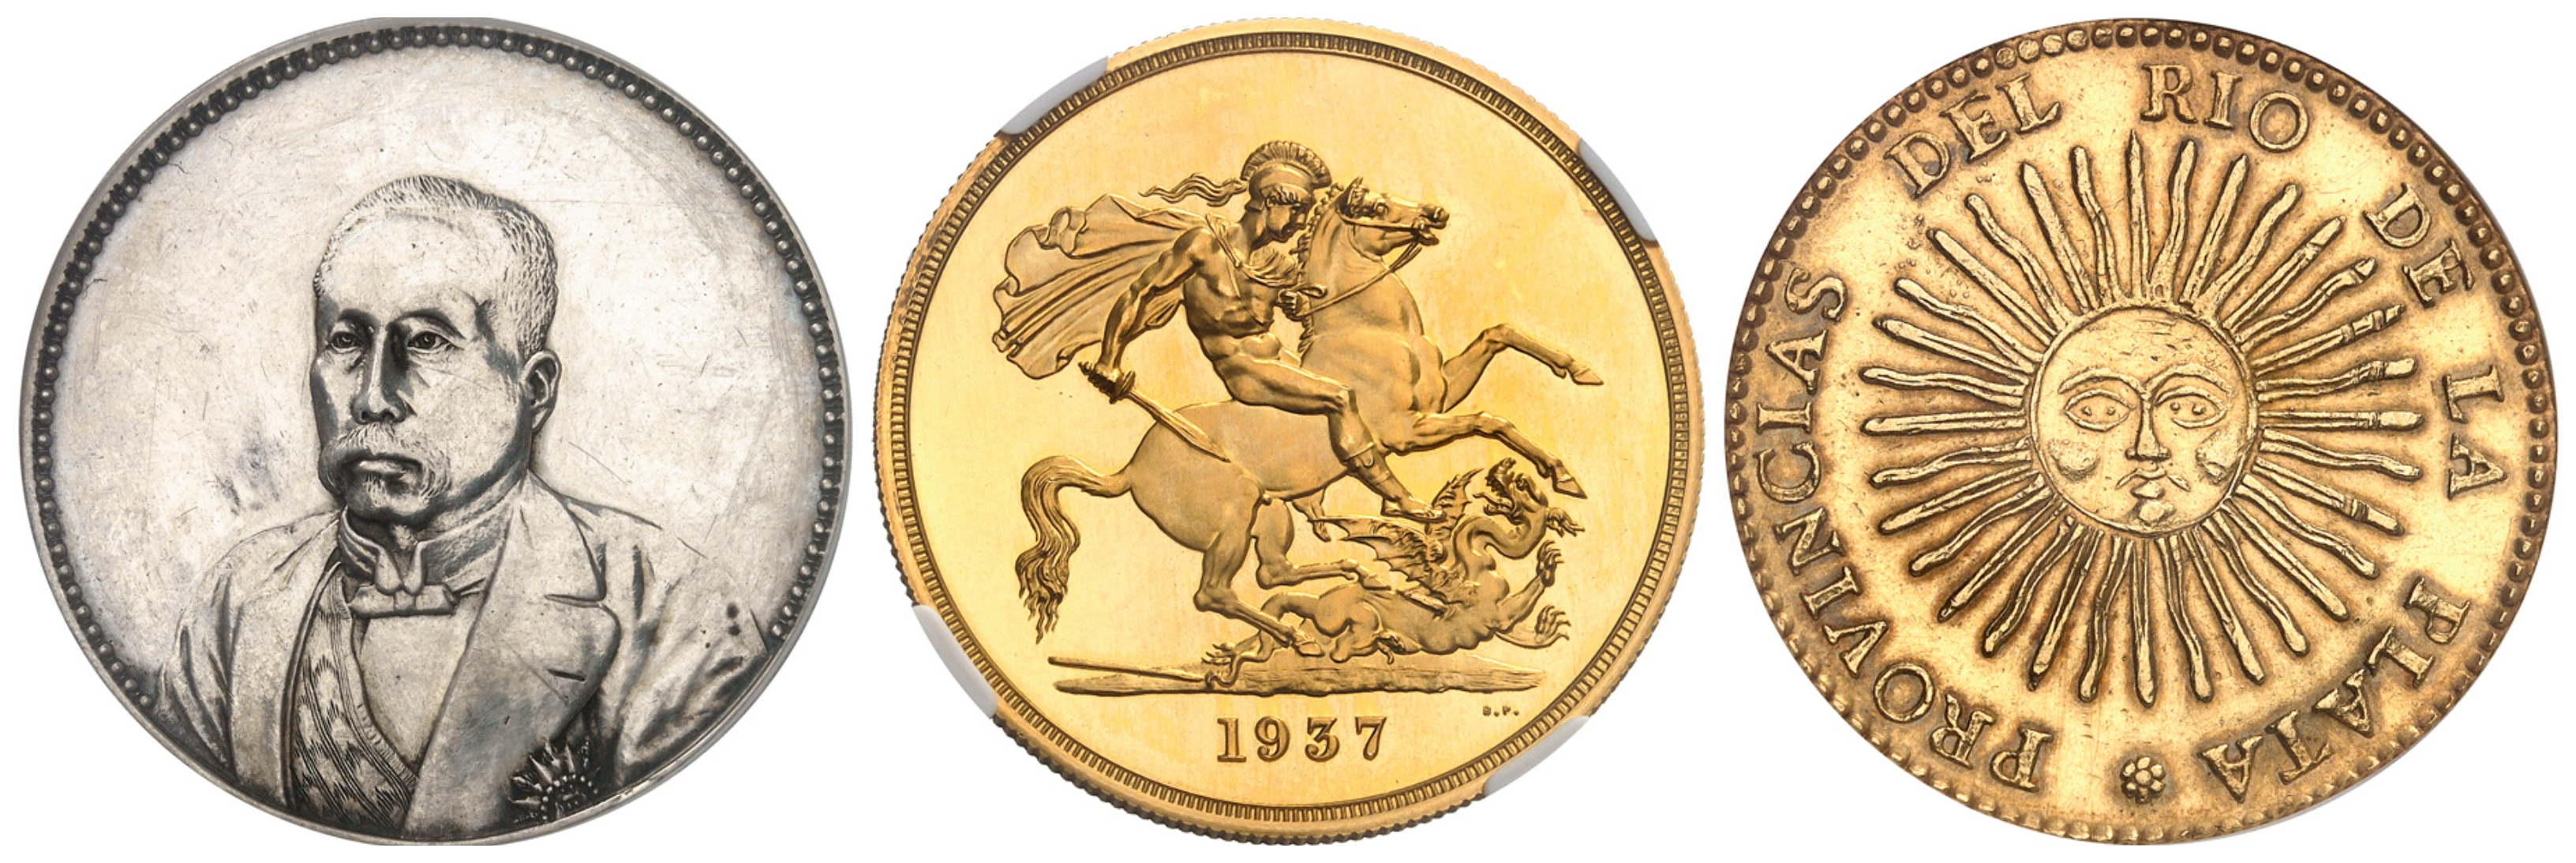 thumbnail image for MDC Monnaies de Collections Preview: 8th Numismatic Auction Rare Coins and Medals